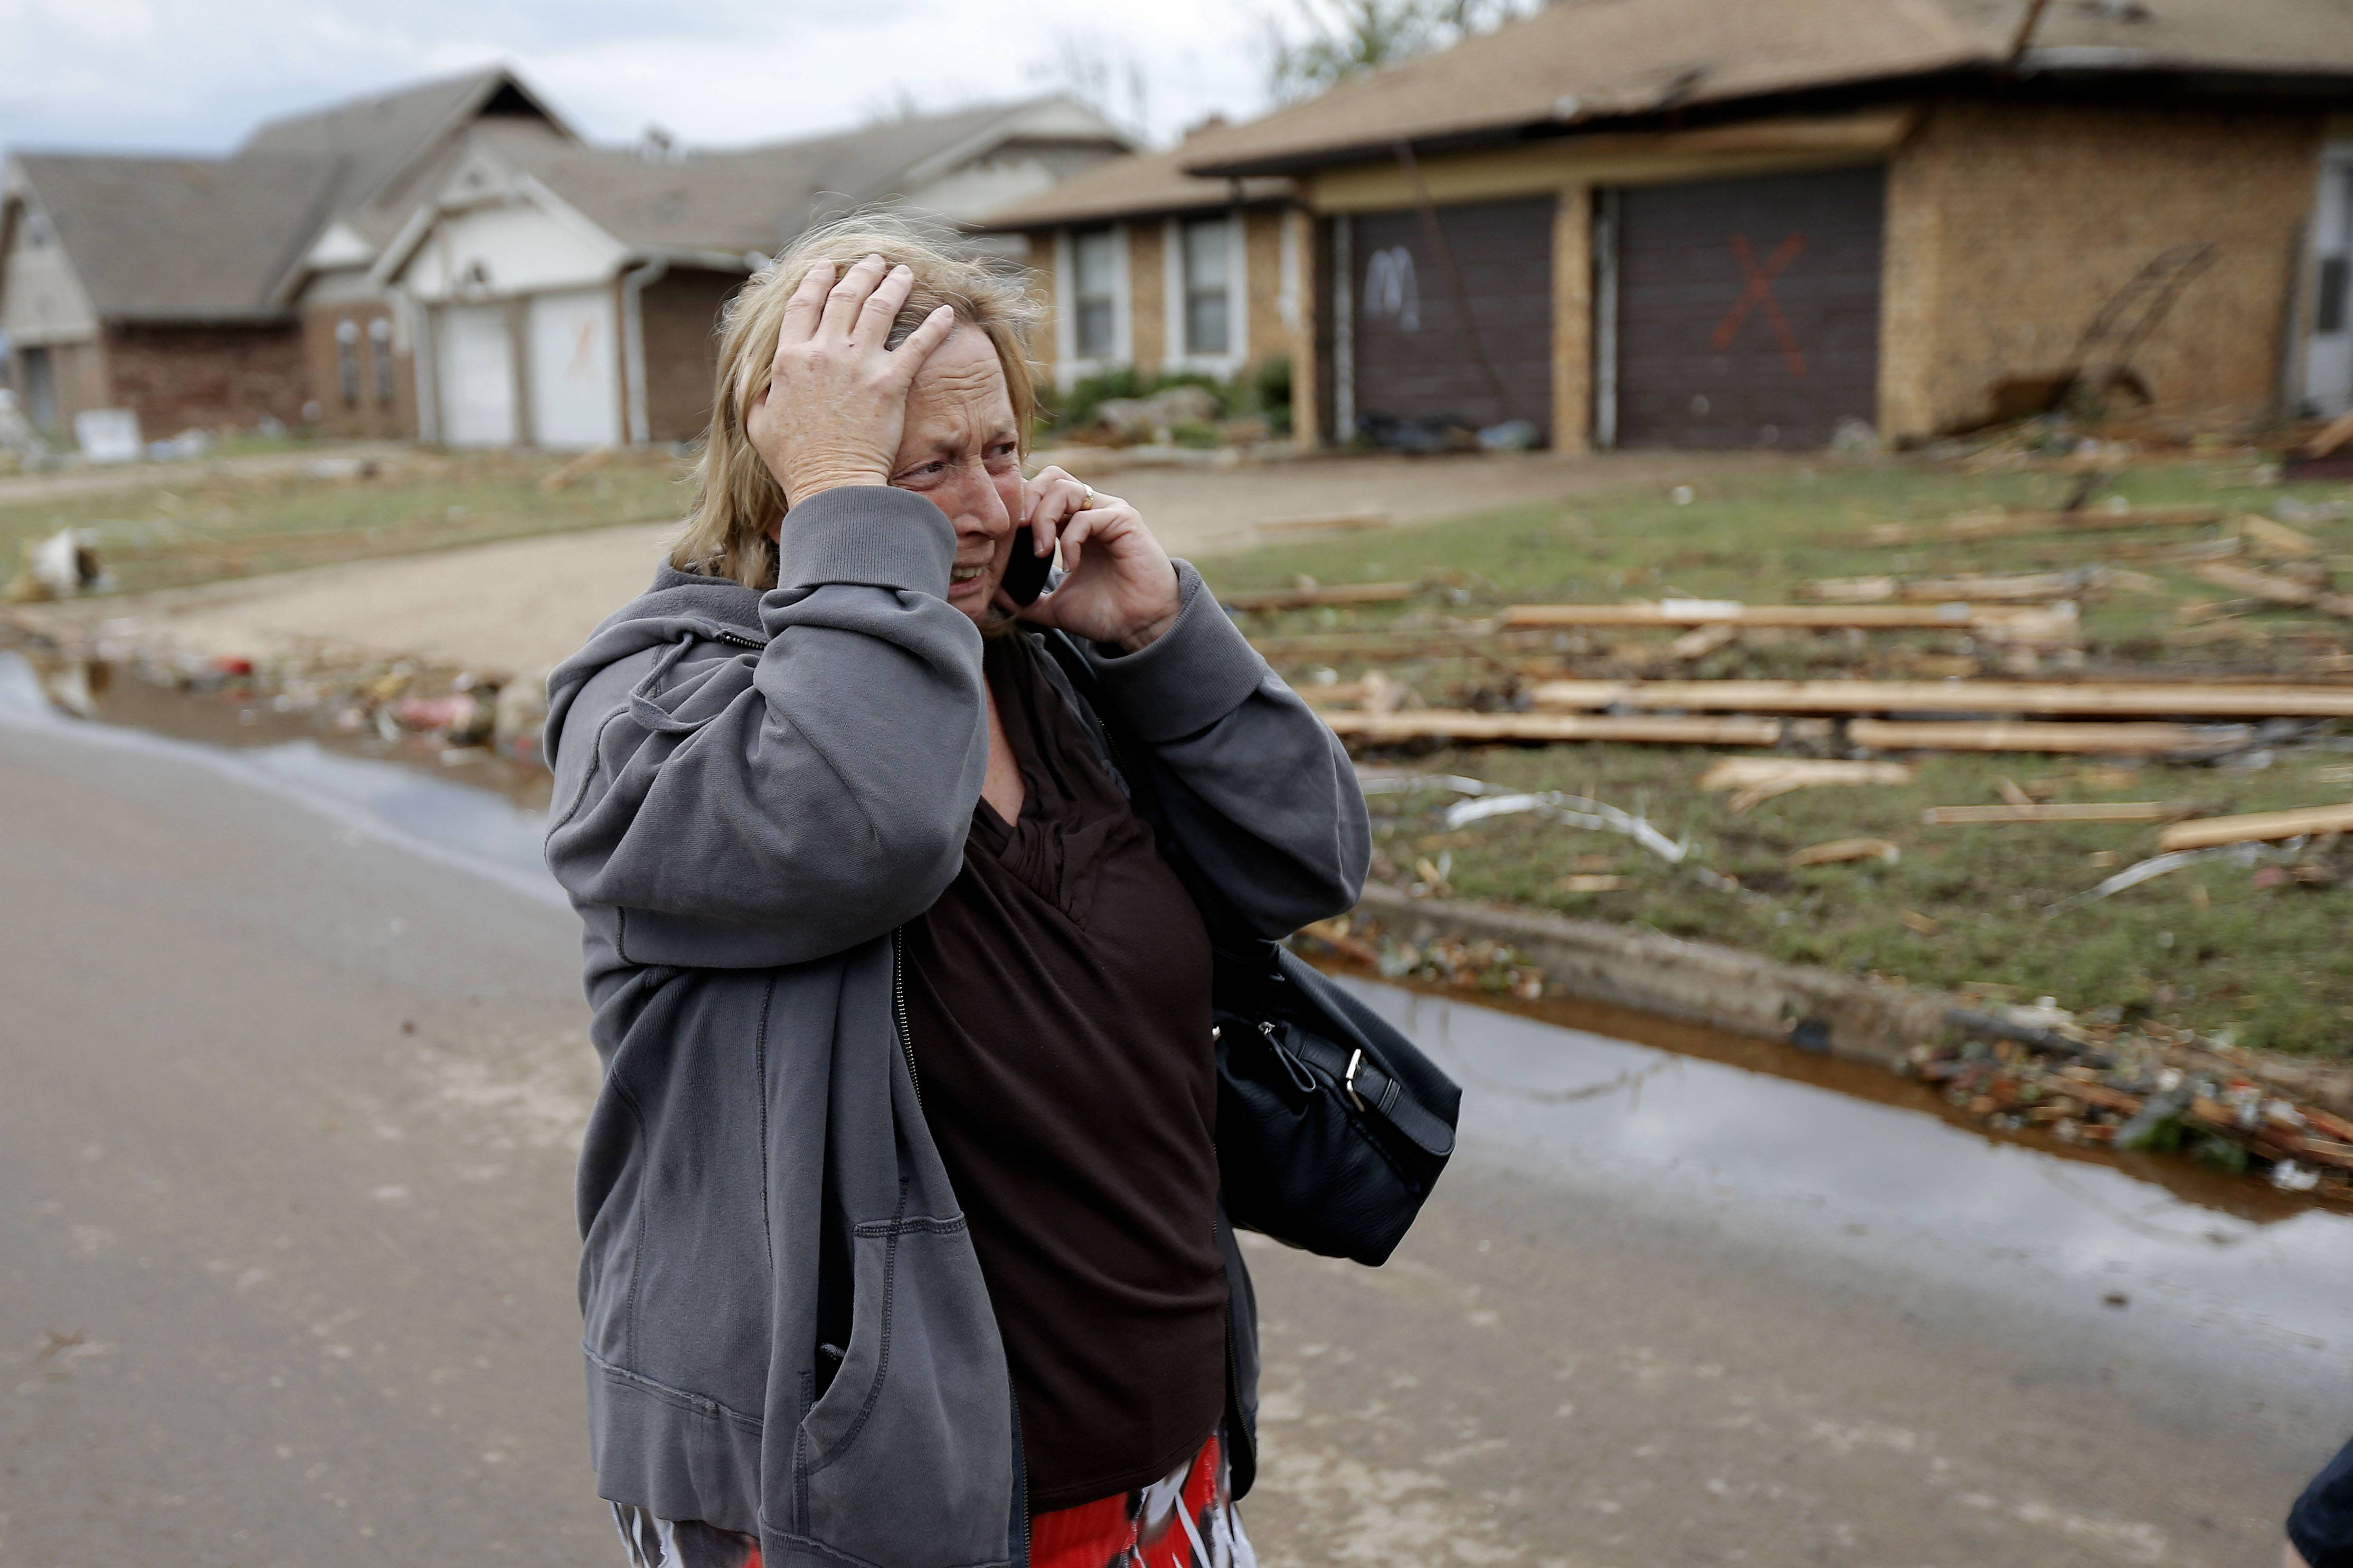 Paula McGee reacts as she sees her home on Kings Manor in Moore, Okla., on Tuesday, May 21, 2013. McGee bought the home two weeks ago and it was hit by the tornado that moved through the Moore area on Monday.